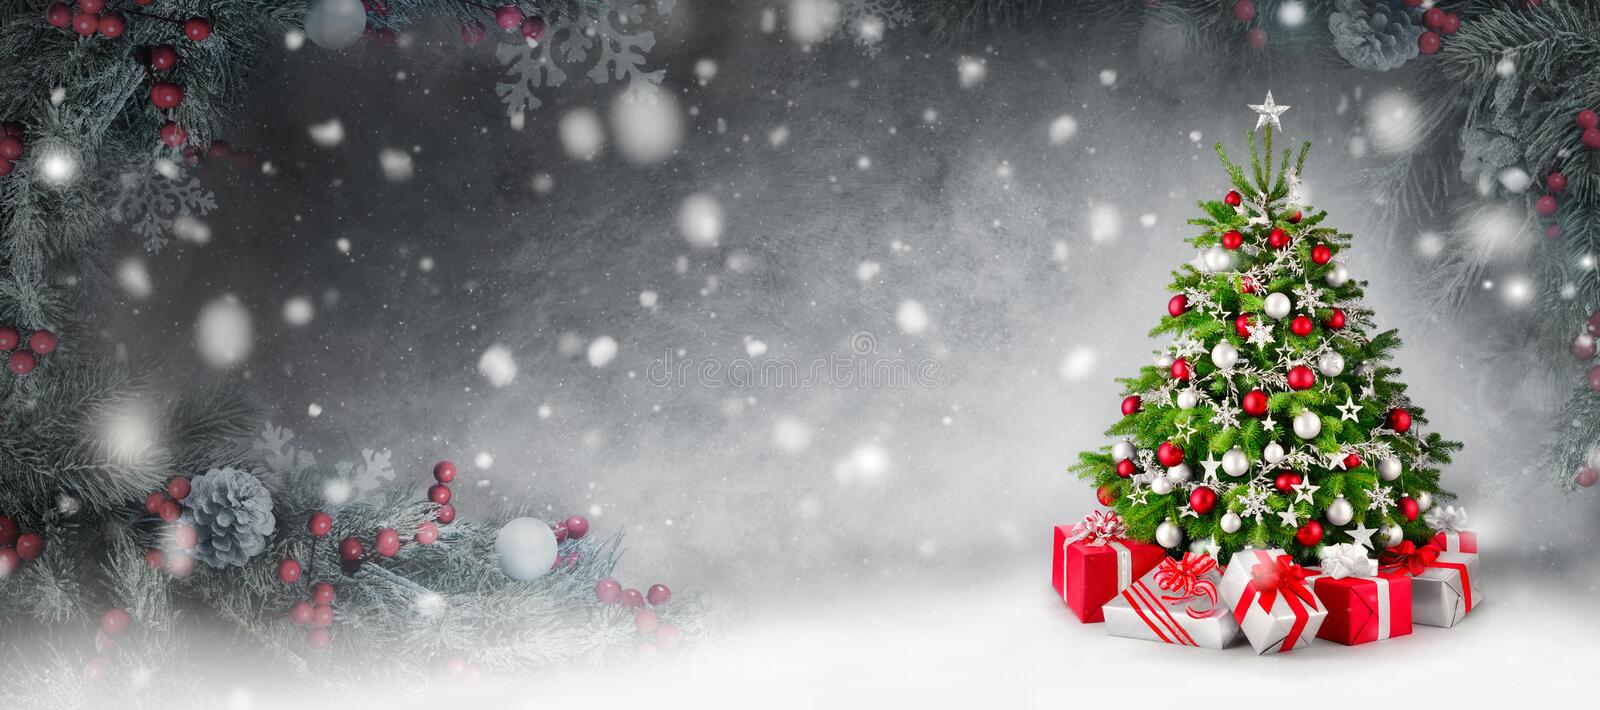 Christmas tree and snow background framed by fir branches stock images